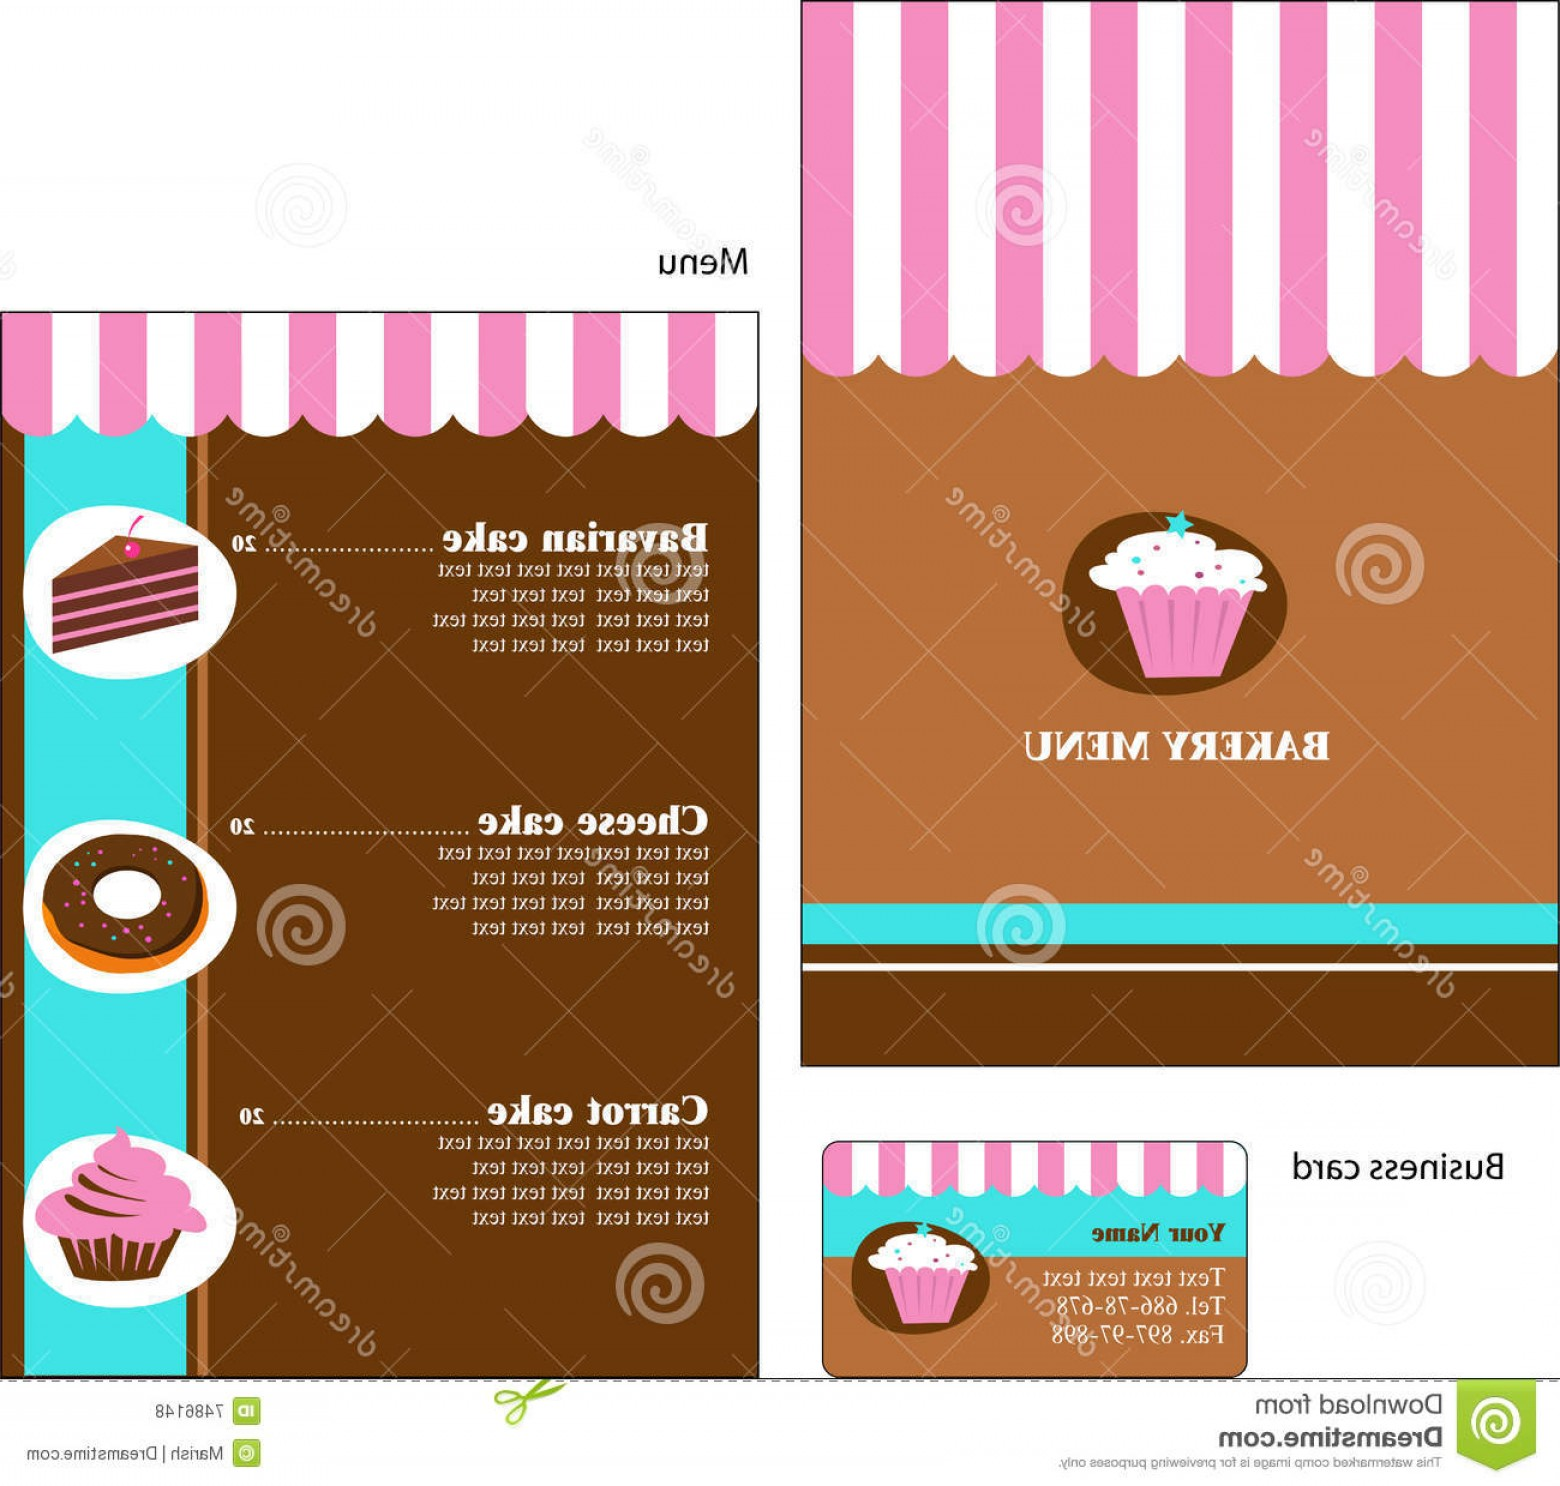 PSD Vector Vintage Cake: Royalty Free Stock Photos Template Designs Bakery Restaurant Menu Image